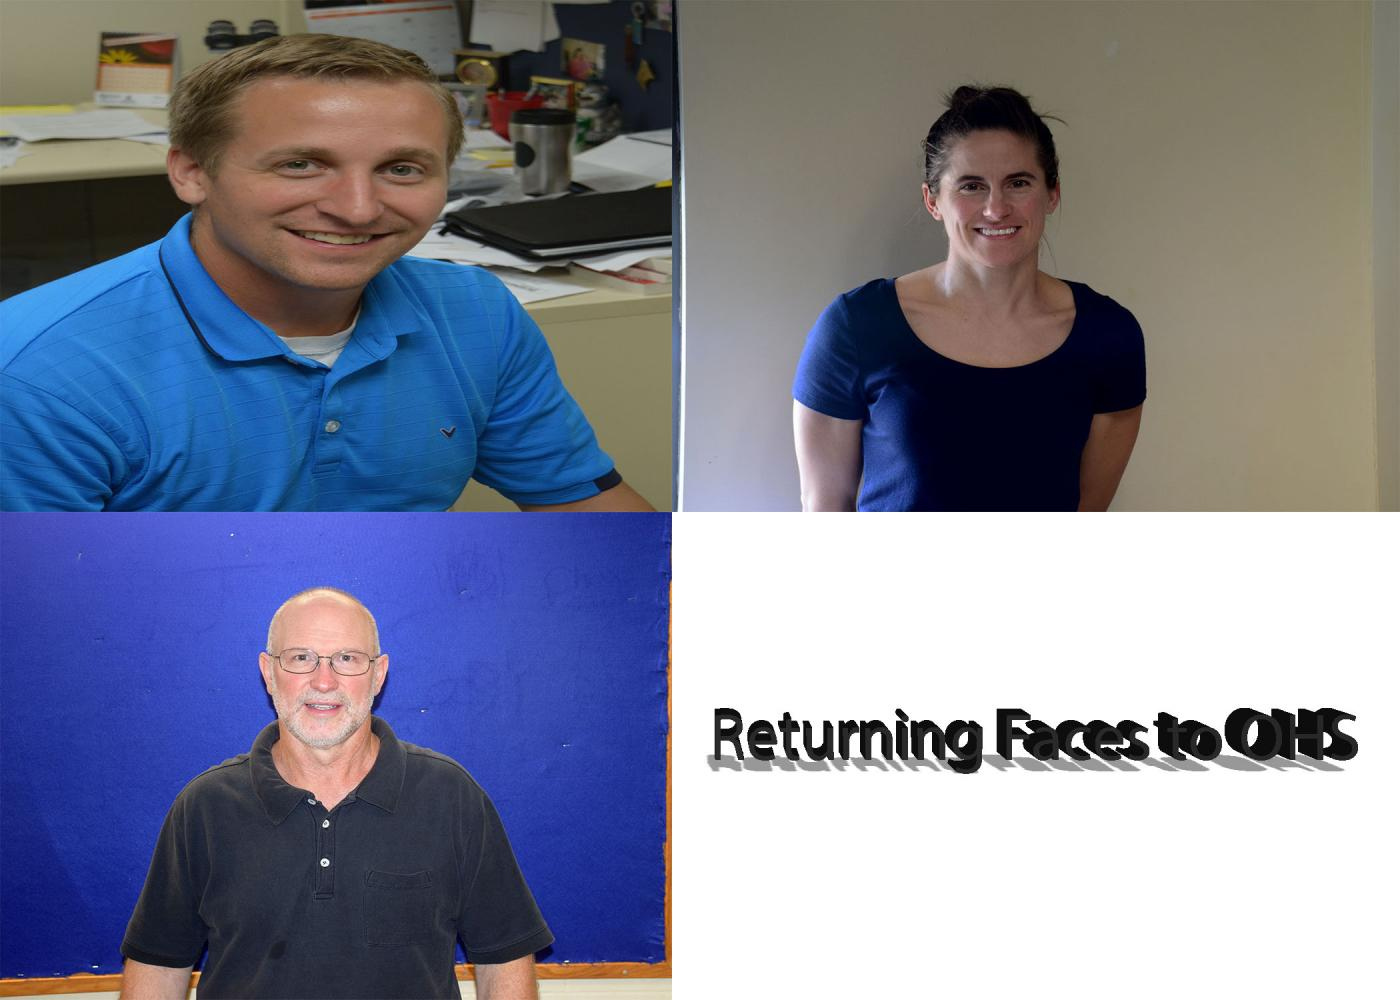 Welcome back to some returning staff members